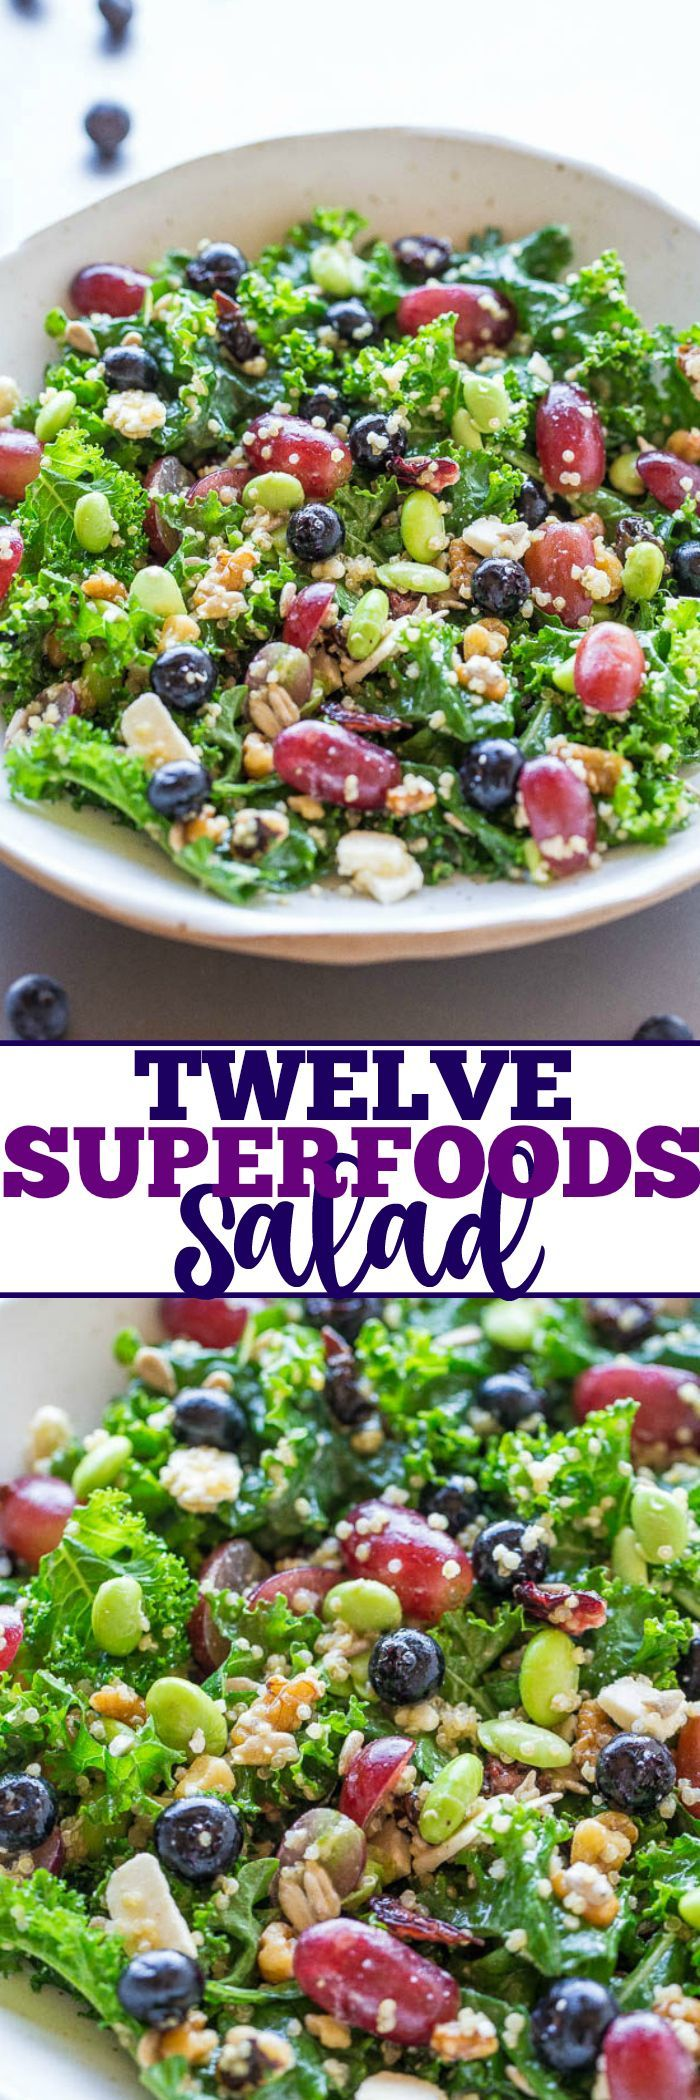 Twelve Superfoods Salad - Trying to eat healthier? MAKE THIS easy, flavorful salad!! Loaded with everything HEALTHY and it tastes awesome! Kale, quinoa, edamame, blueberries, grapes, seeds, nuts, and more!!